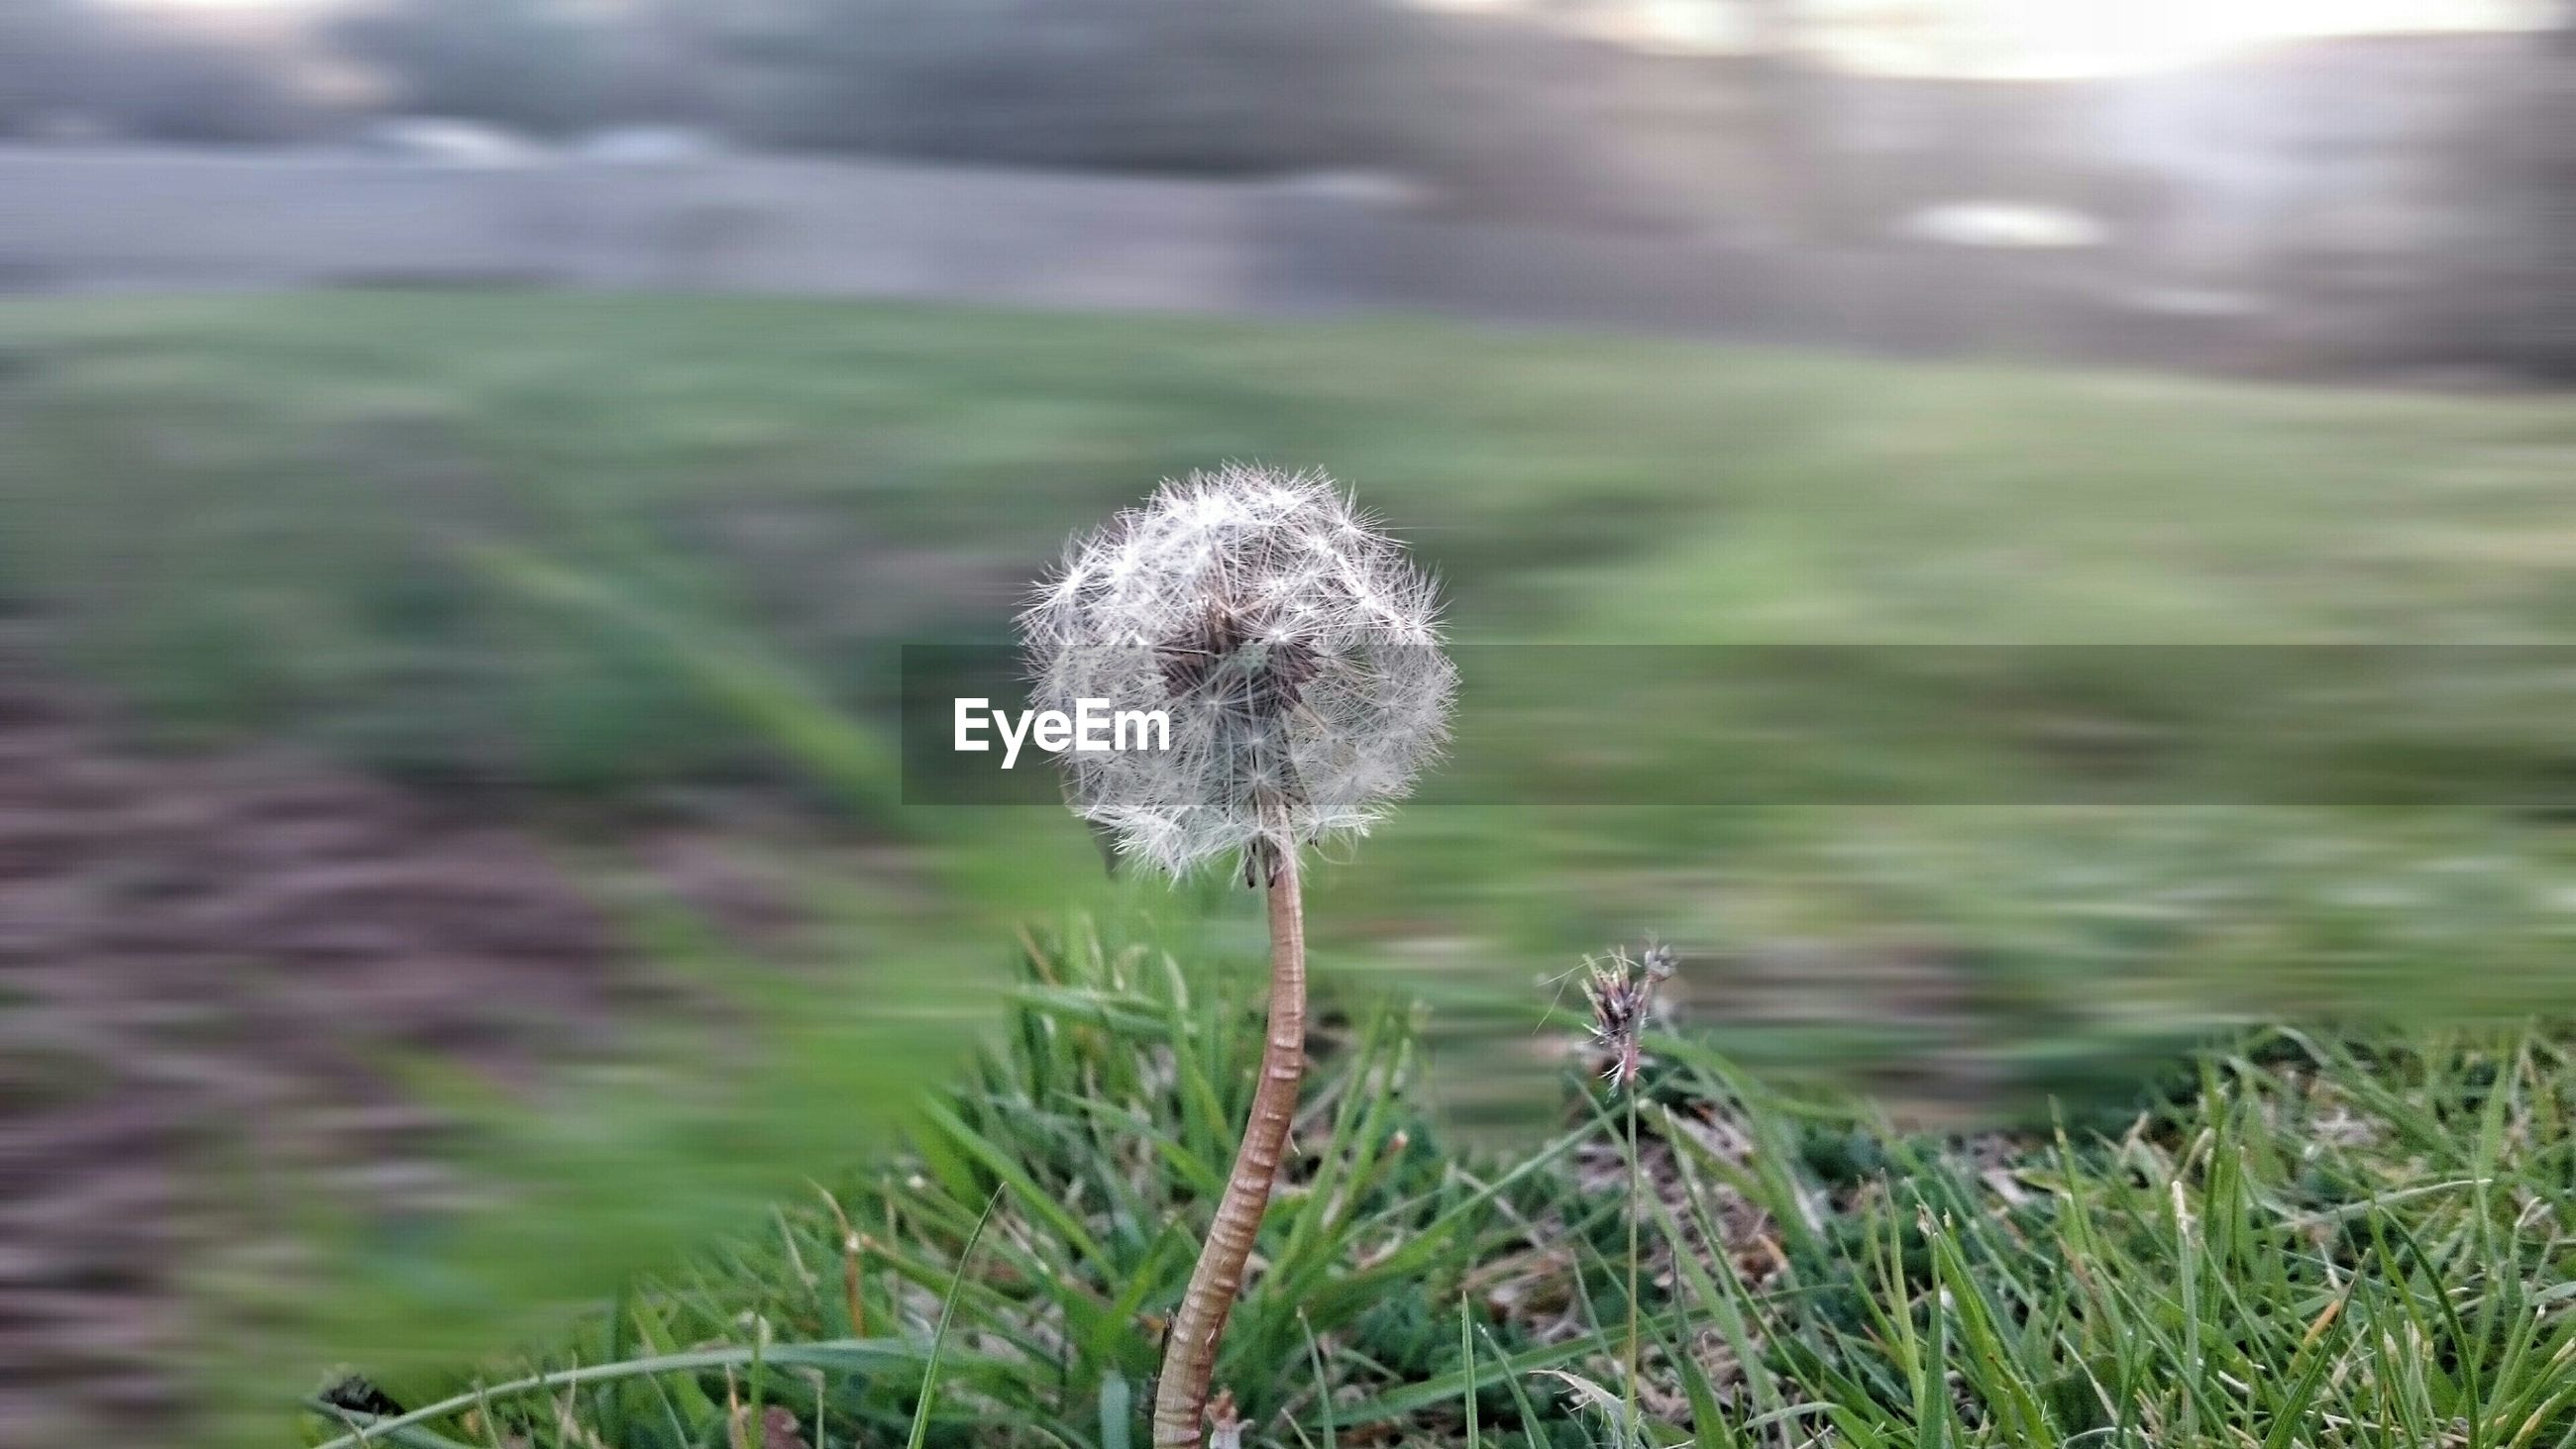 Close-up of dandelion blooming in field